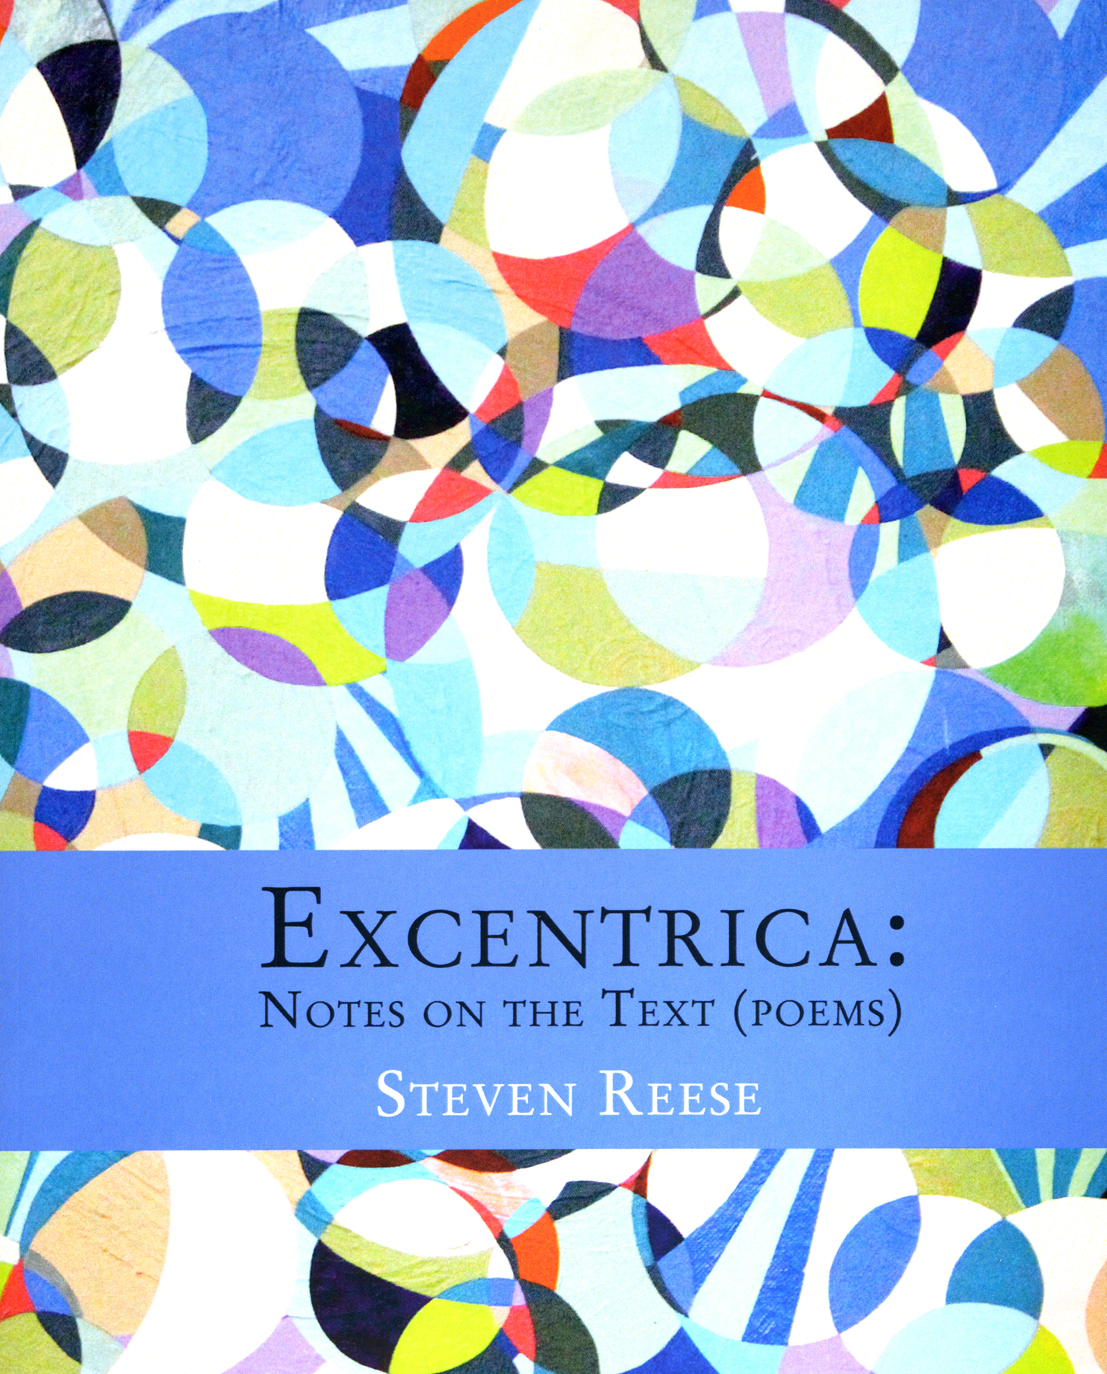 Excentrica: Notes on the Text